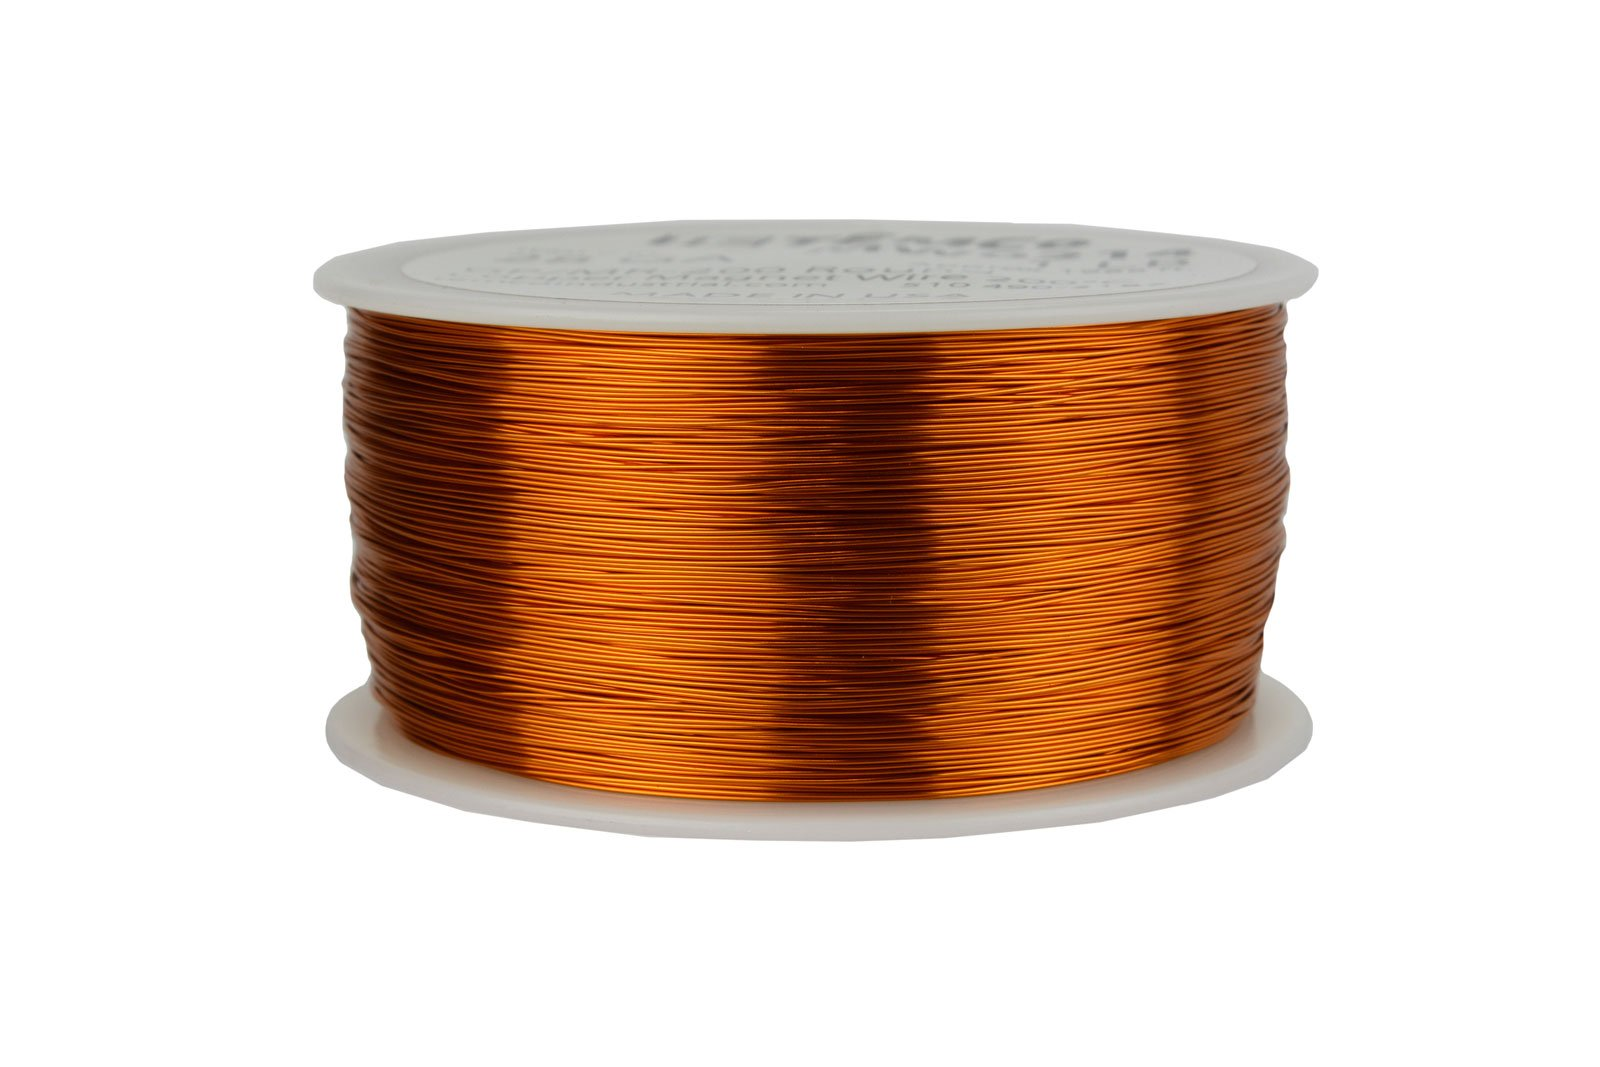 TEMCo 28 AWG Copper Magnet Wire - 1 lb 1988 ft